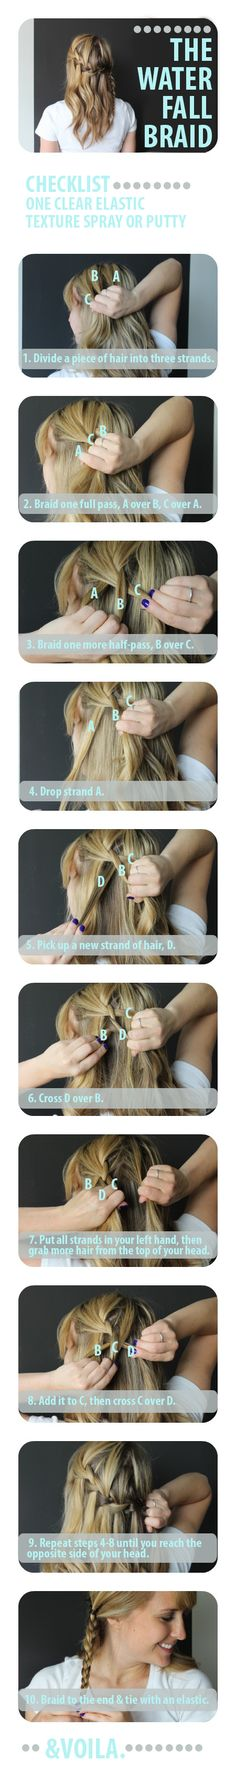 waterfall braid tutorial, @Sarah Chintomby Weinle, you should try this on Princess Maddie